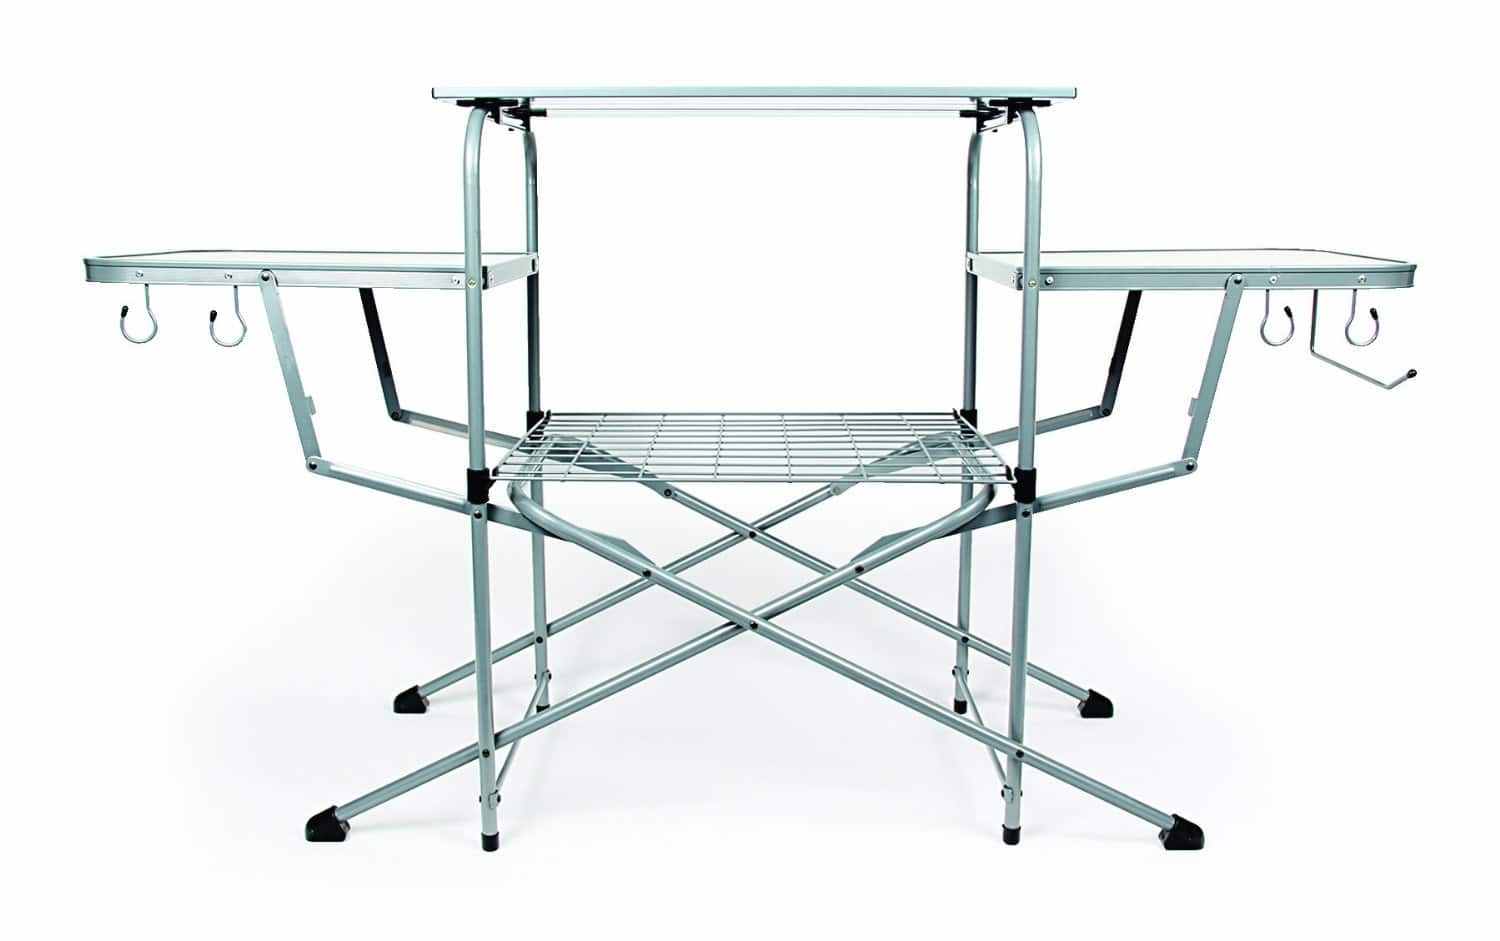 Camco Deluxe Grilling Table w/ Carrying Case $39.61 at Amazon (4.5 star reviews)